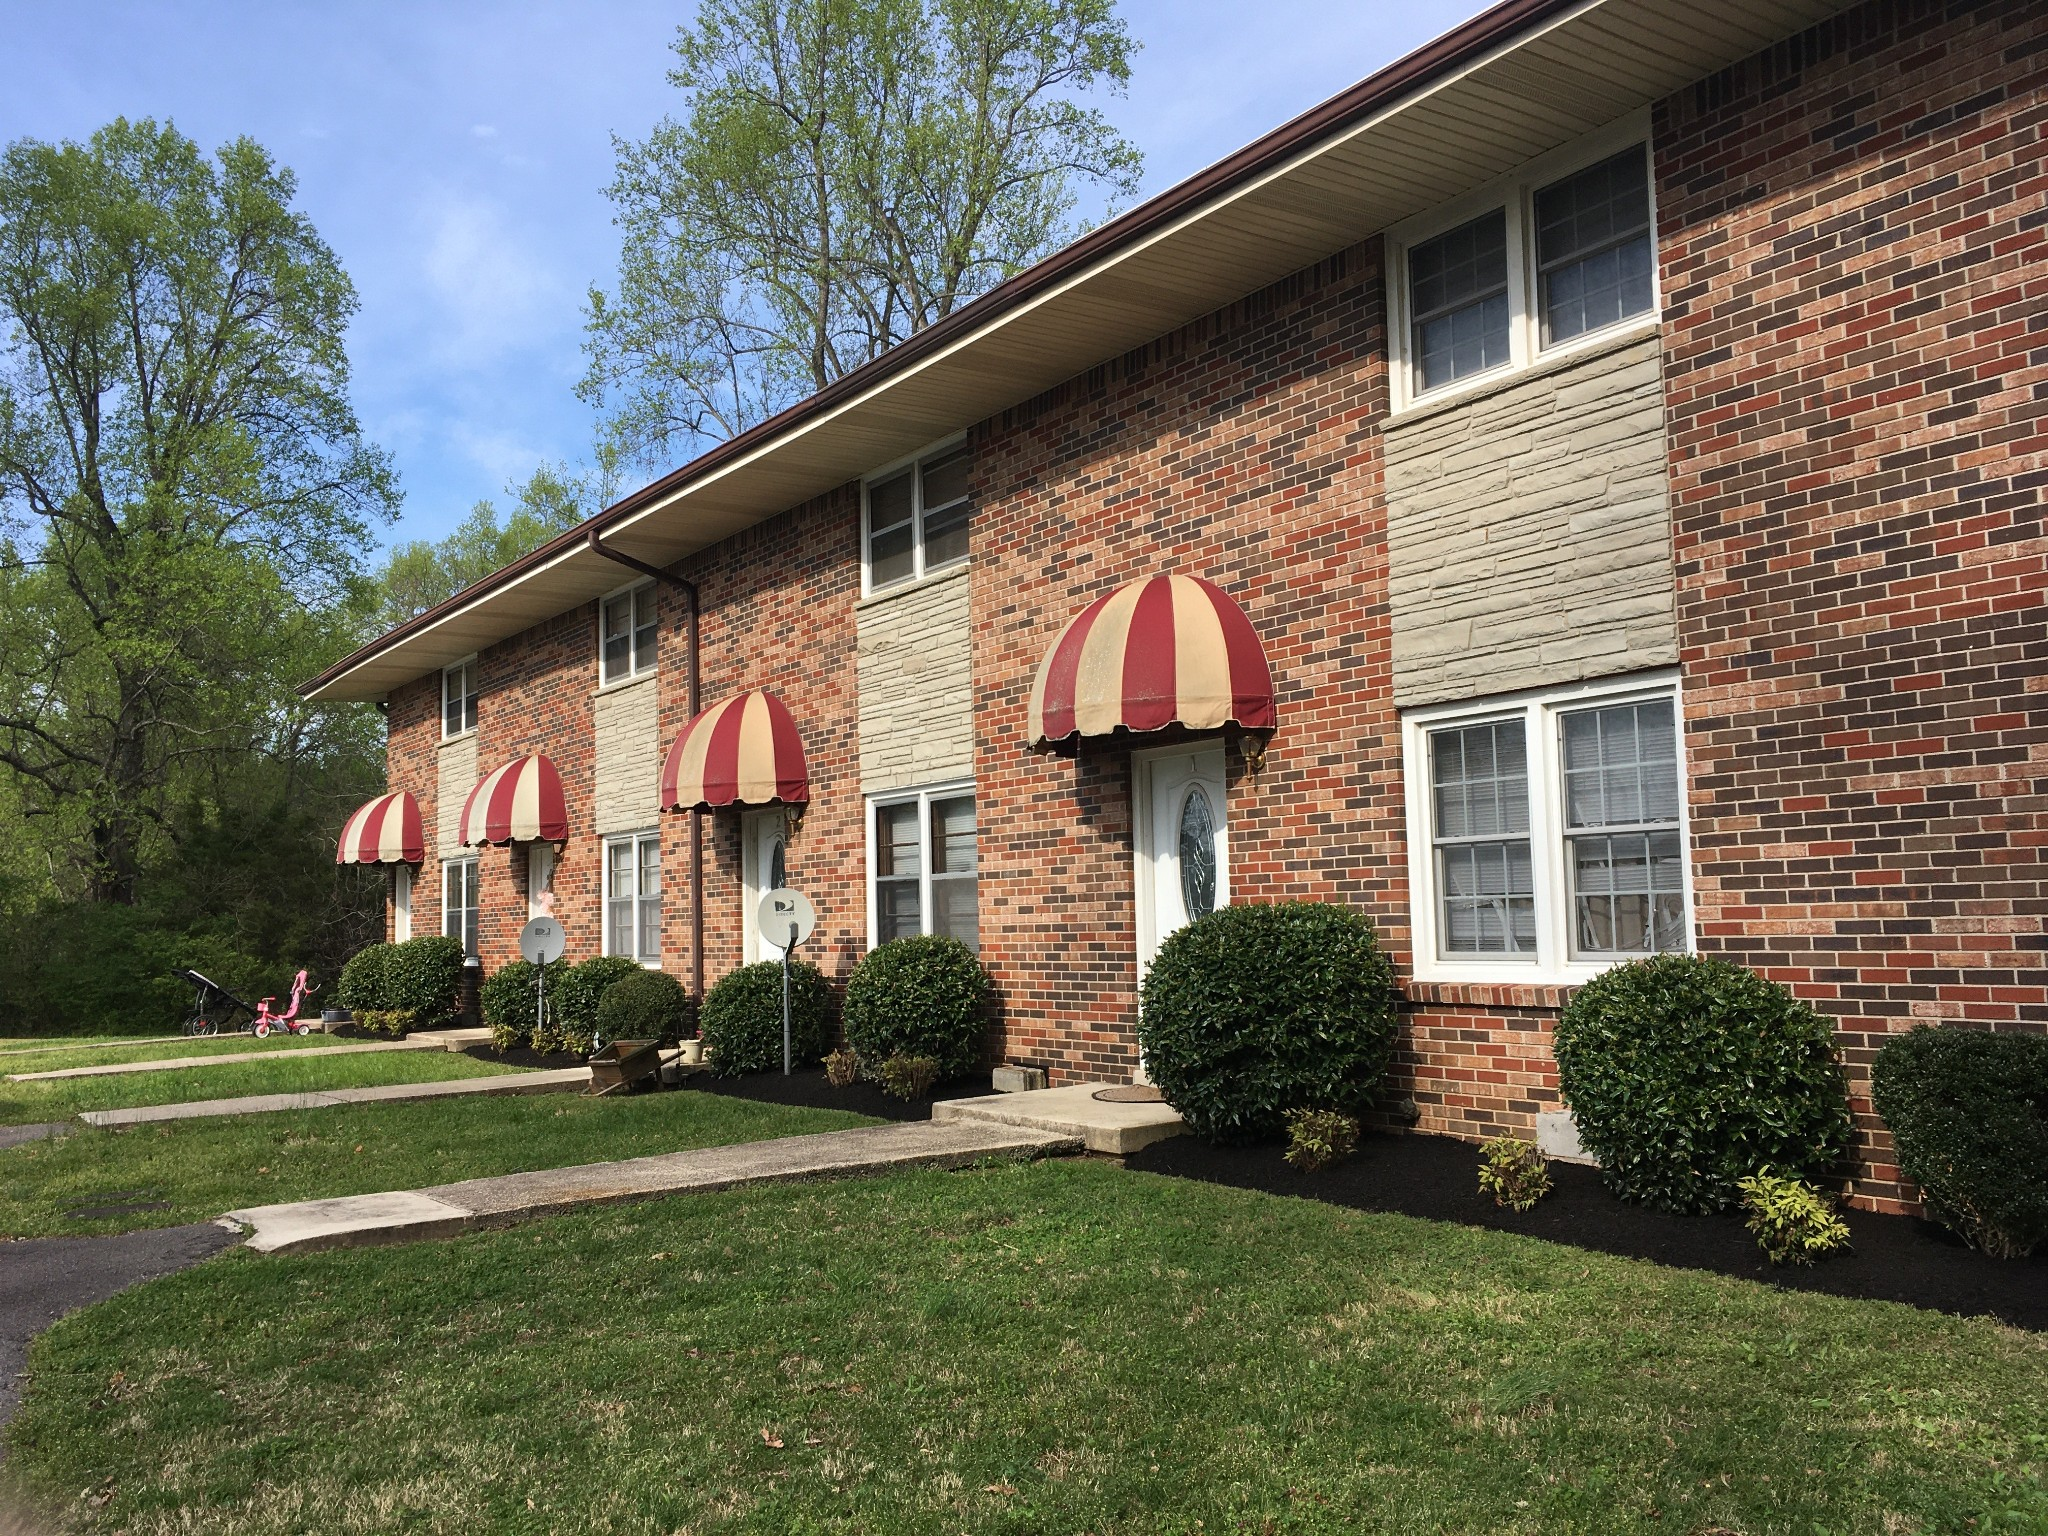 200 Meadow View LN, Dickson, TN 37055 - Dickson, TN real estate listing